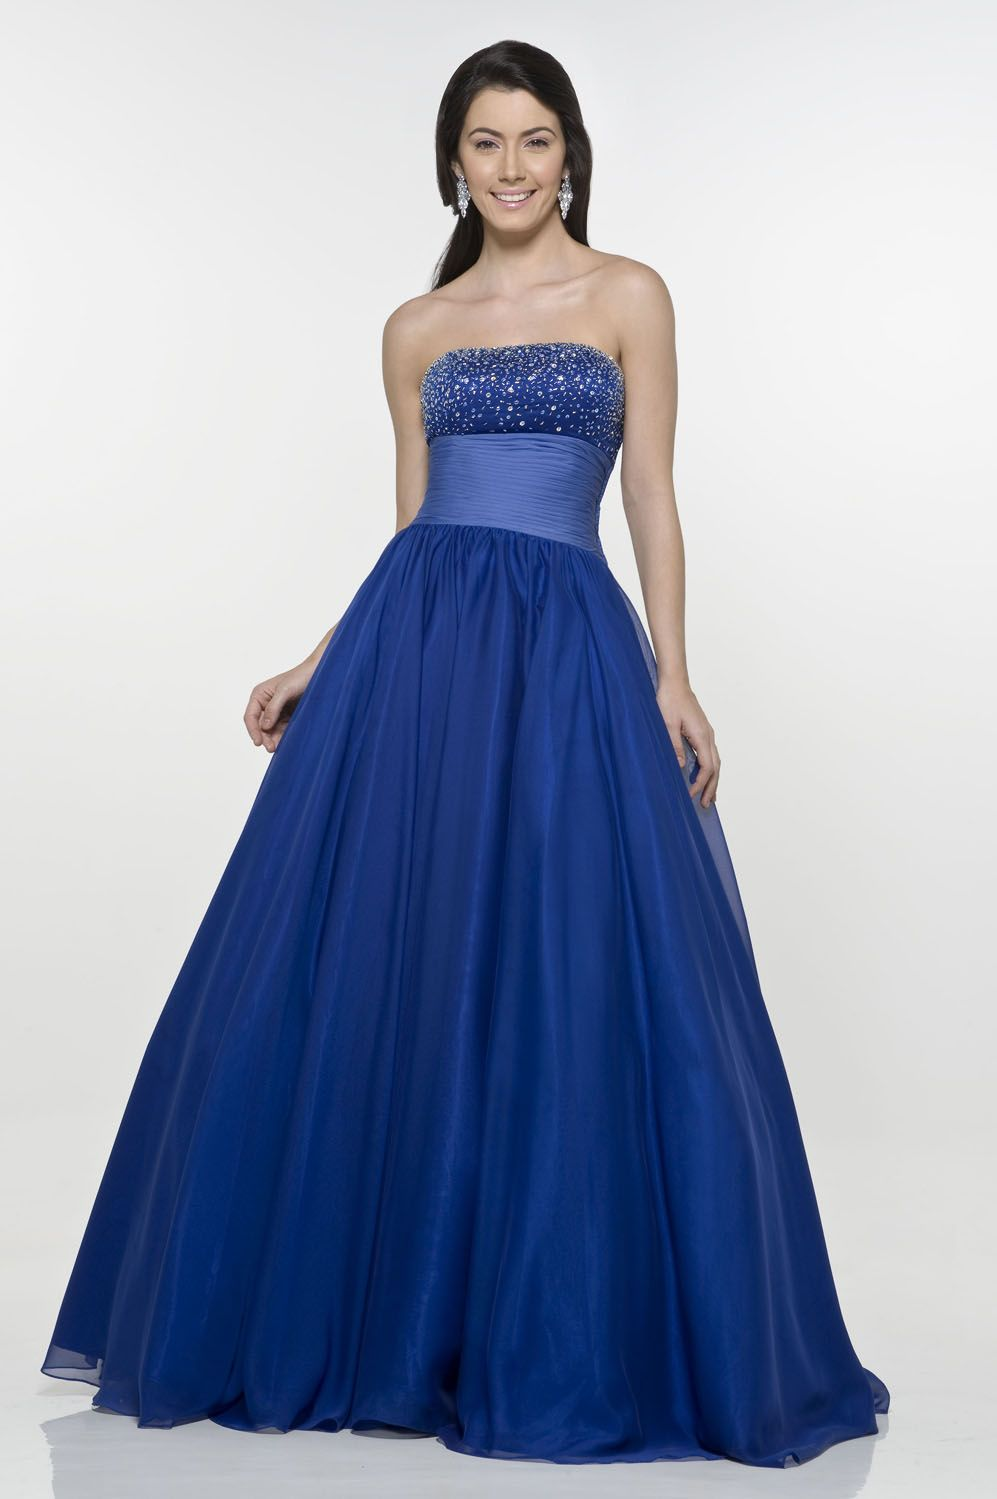 Wide band paillette lace up ball gown tulle satin floor length